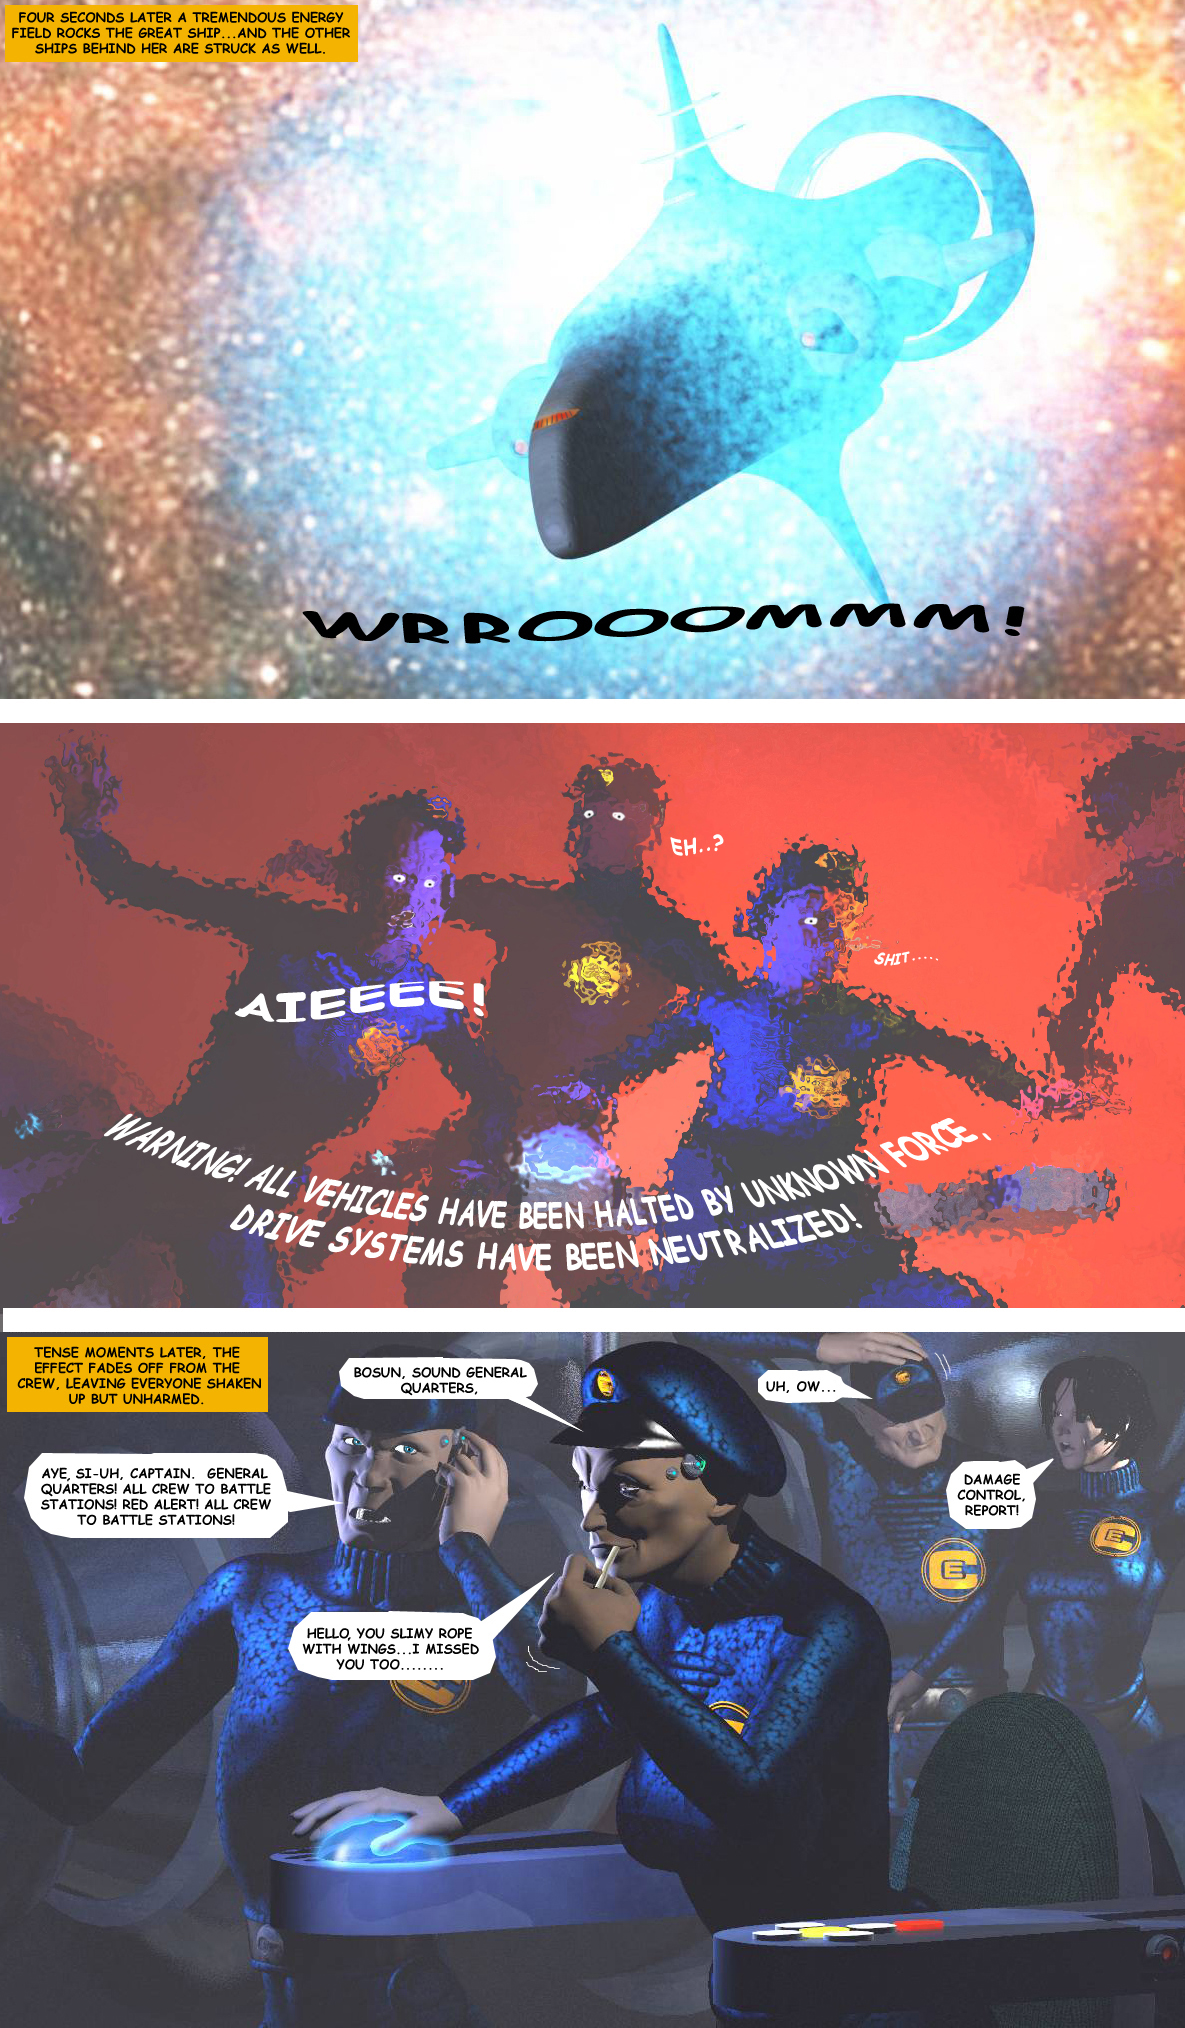 STORM OVER WHOOMERA PAGE 2